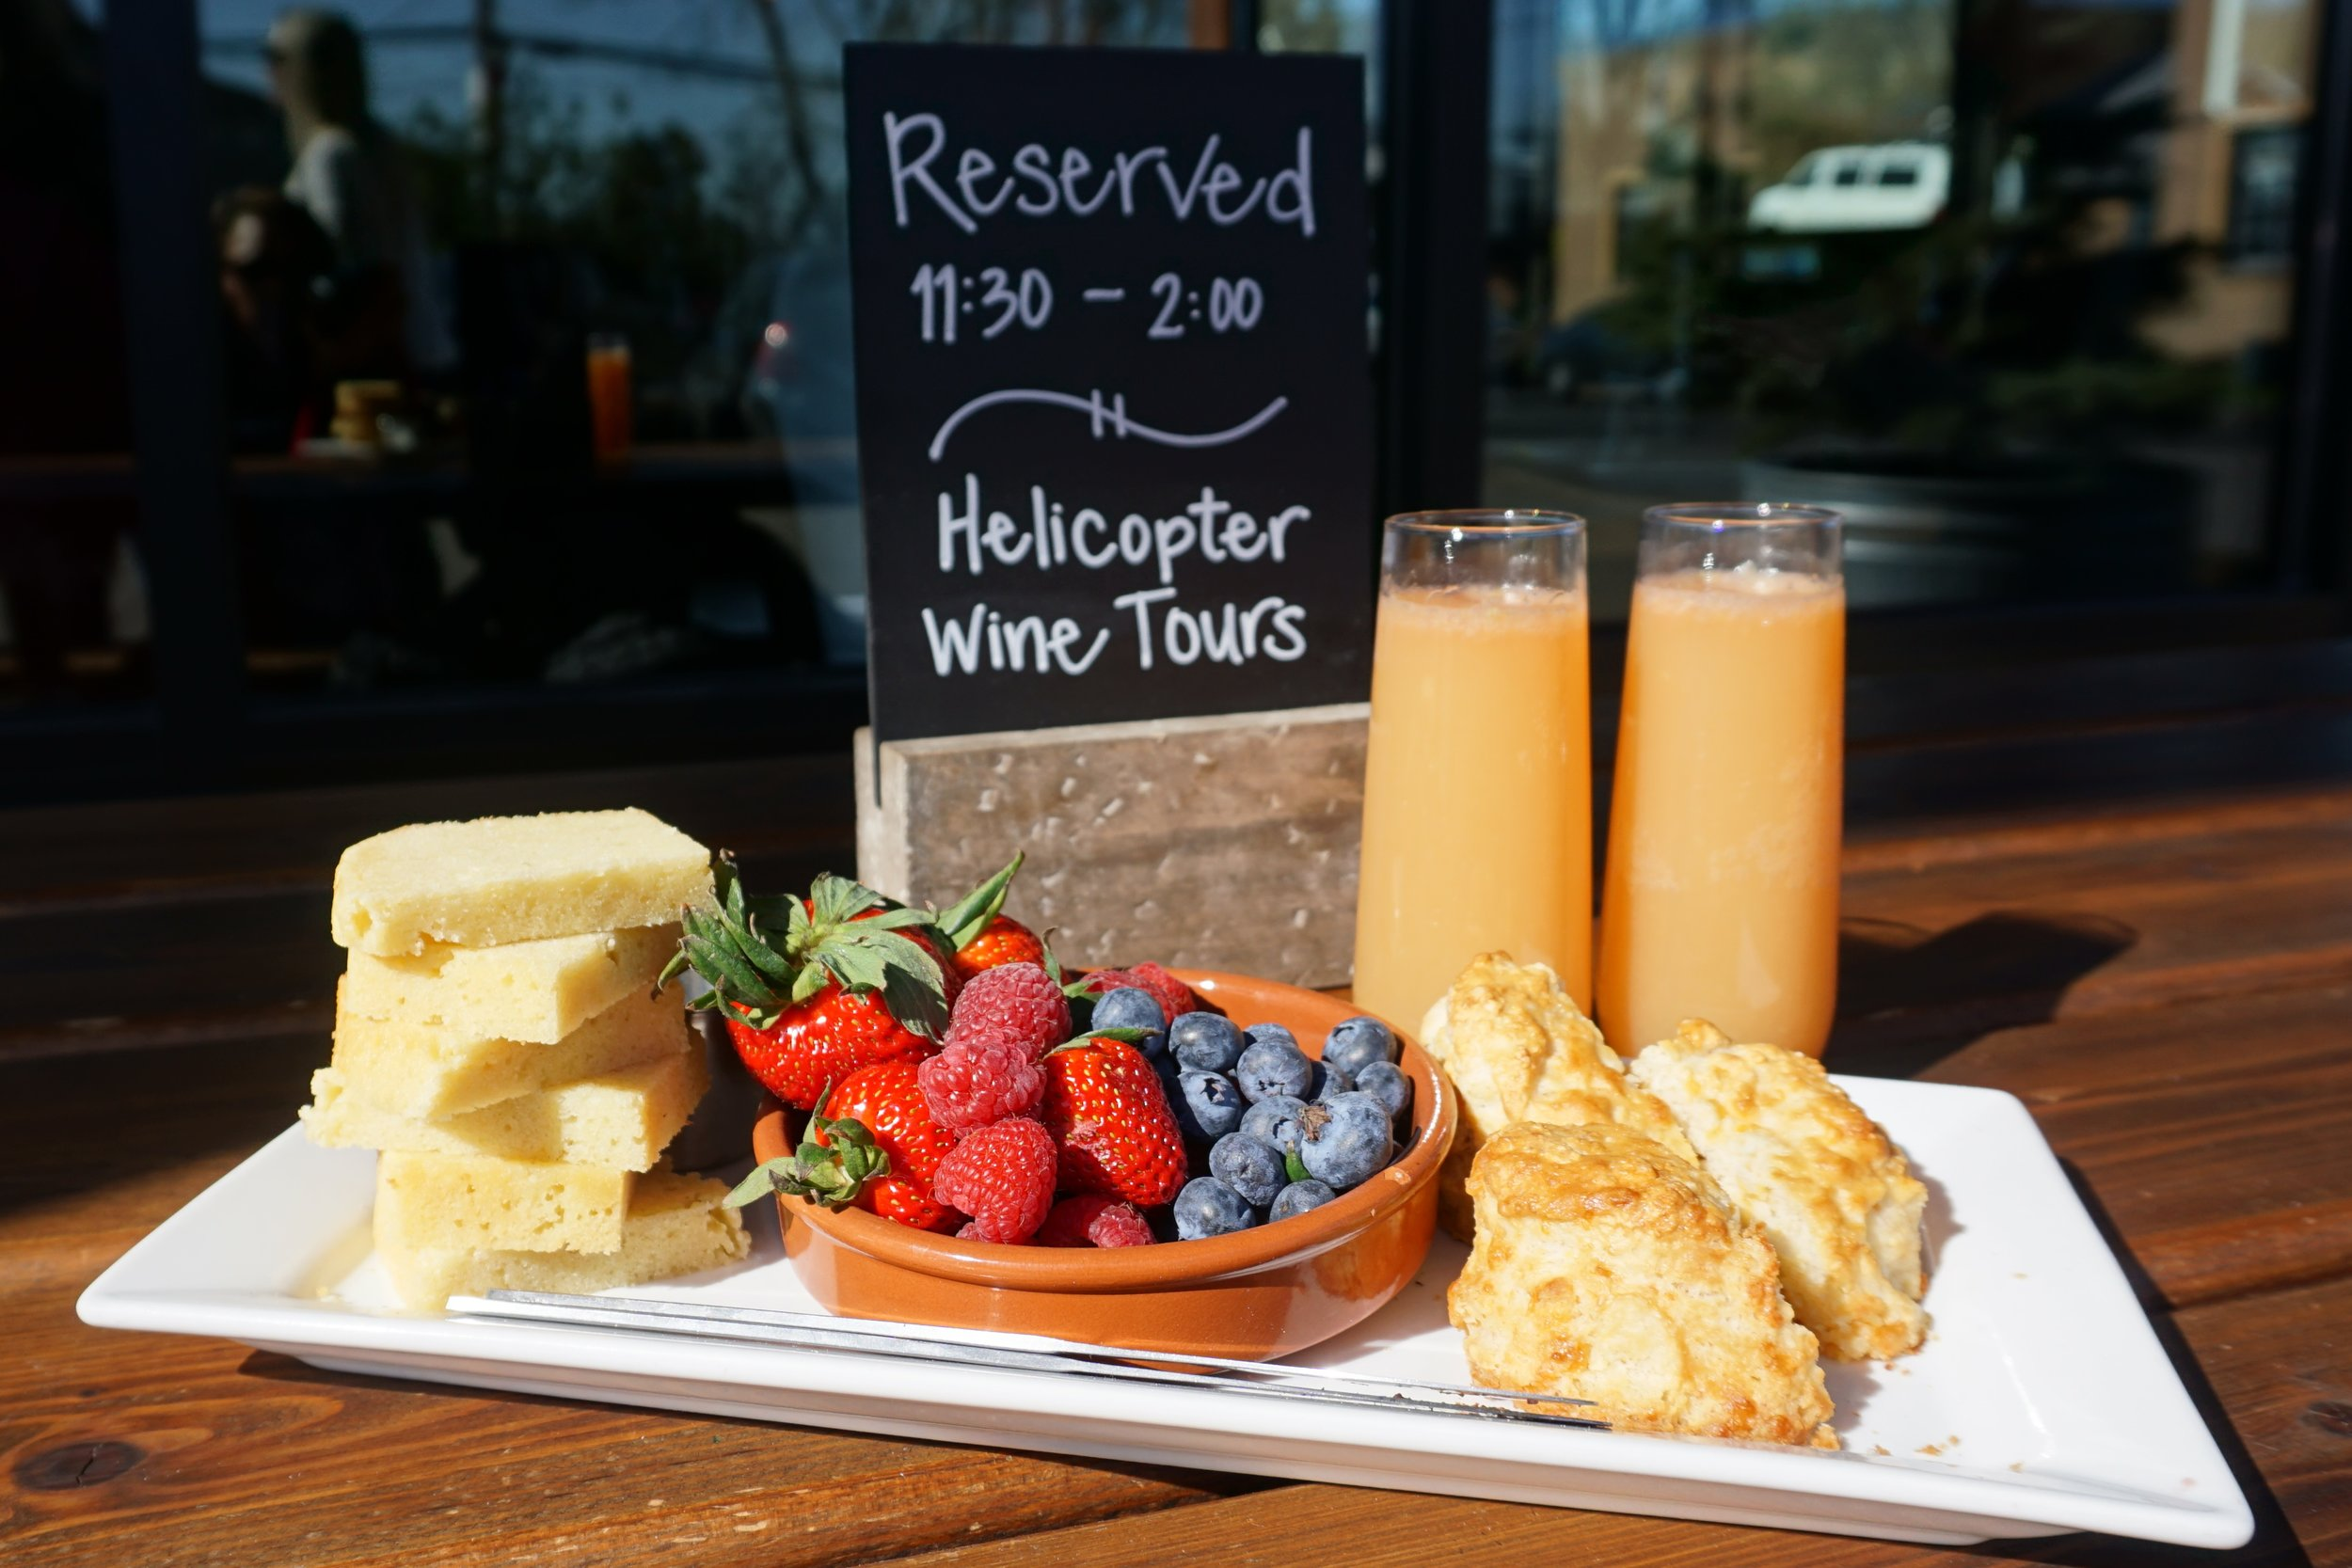 The luxury day of Willamette Valley touring via helicopter begins at Red Hills Market where passengers enjoy a glass of Argyle Winery bubbles with fruit and yummy baked goods. Viki Eierdam